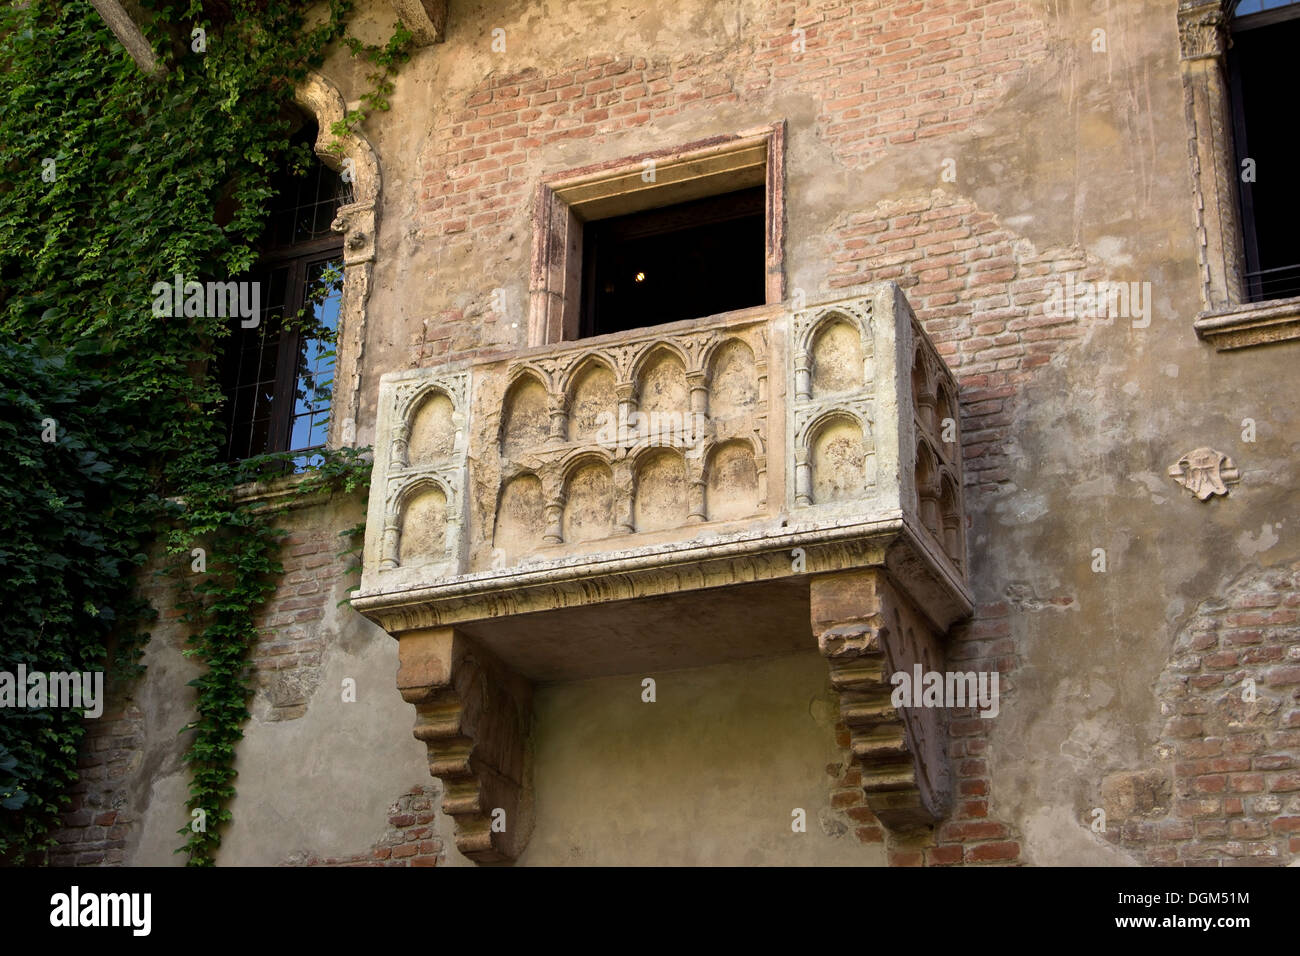 The famous balcony of romeo and juliet in verona stock for Famous balcony